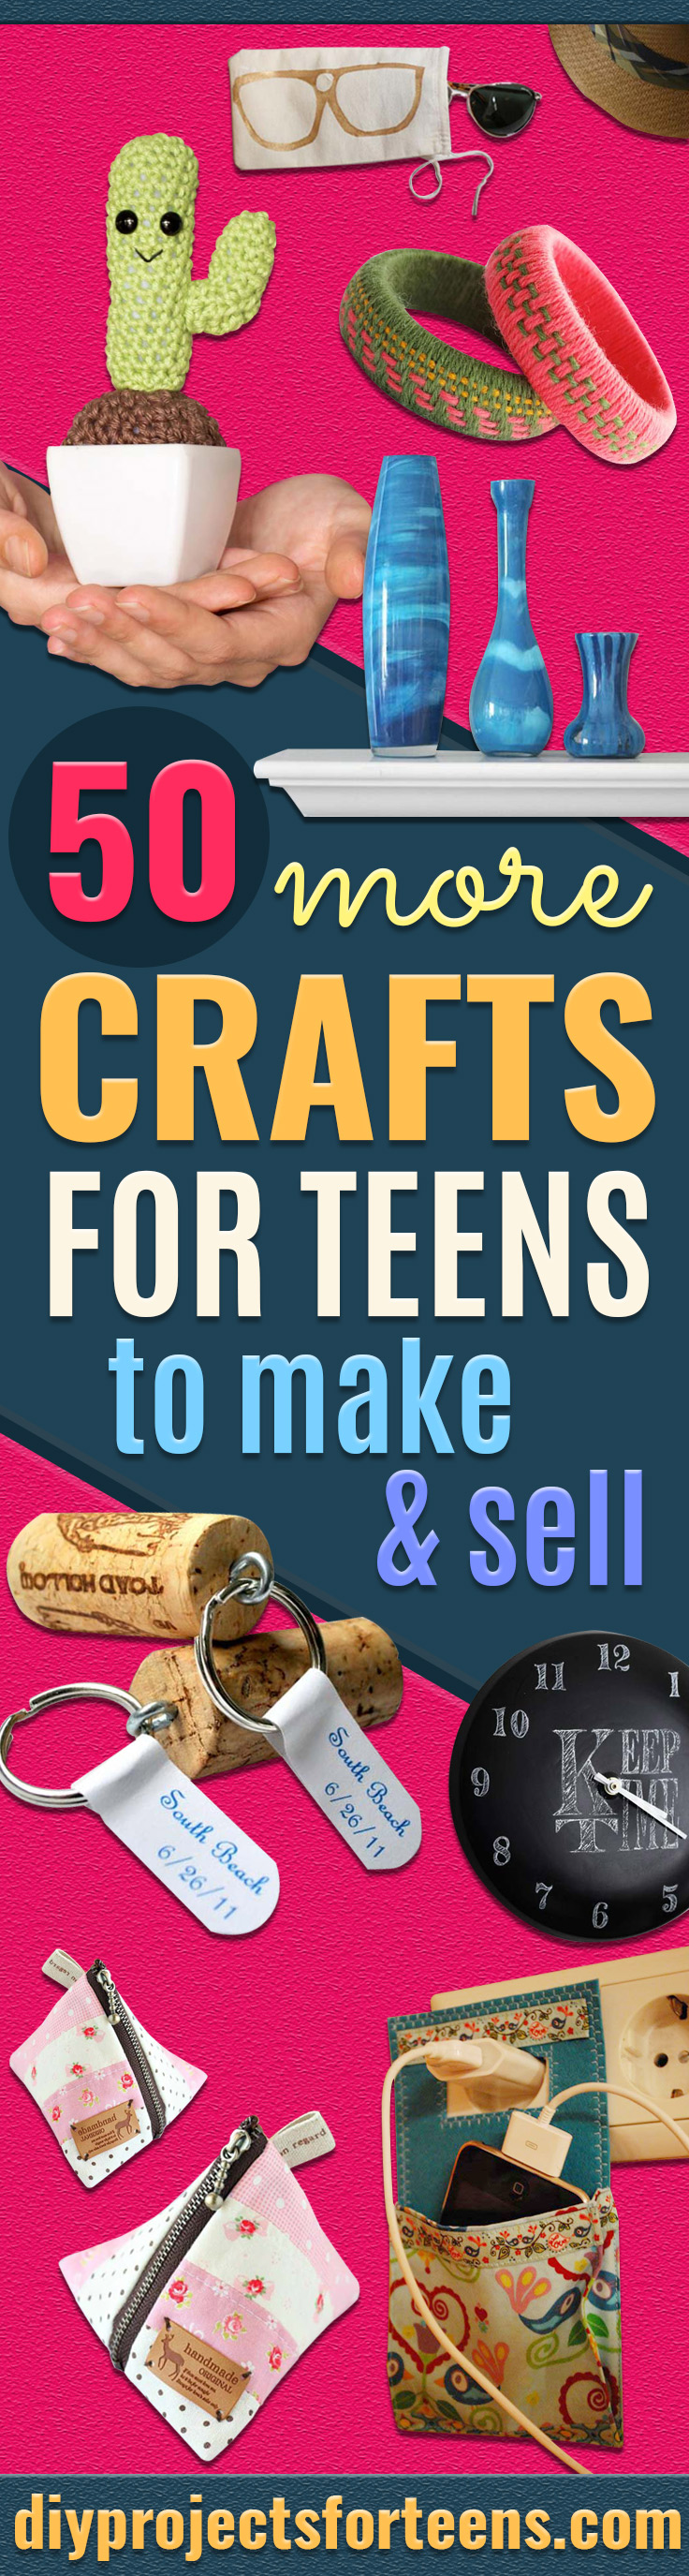 50 more crafts for teens to make and sell